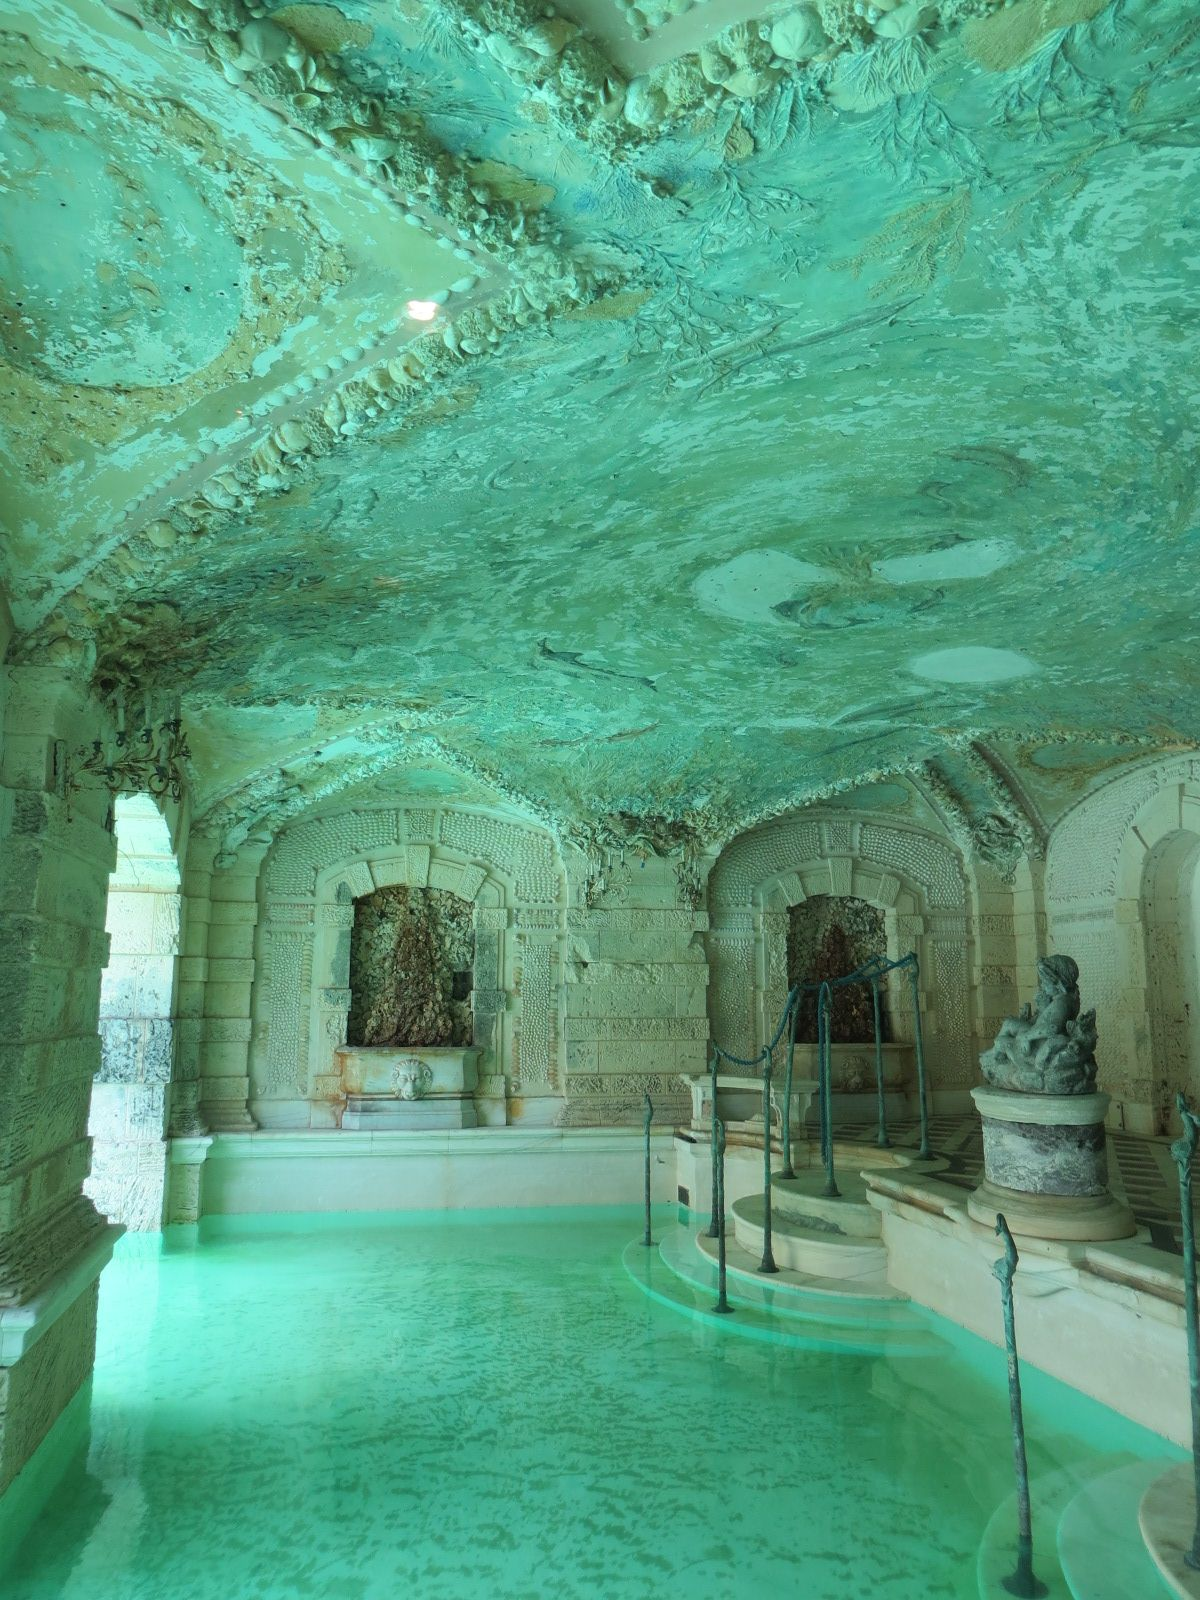 interesting pictures of indoor pools. Home Decor Interior Architecture Cave Theme Decoration Indoor Pool In House  With Rope Rails And Greece Statue Best Design See 21 Images of the World s Most Beautiful Pools Roman Bath